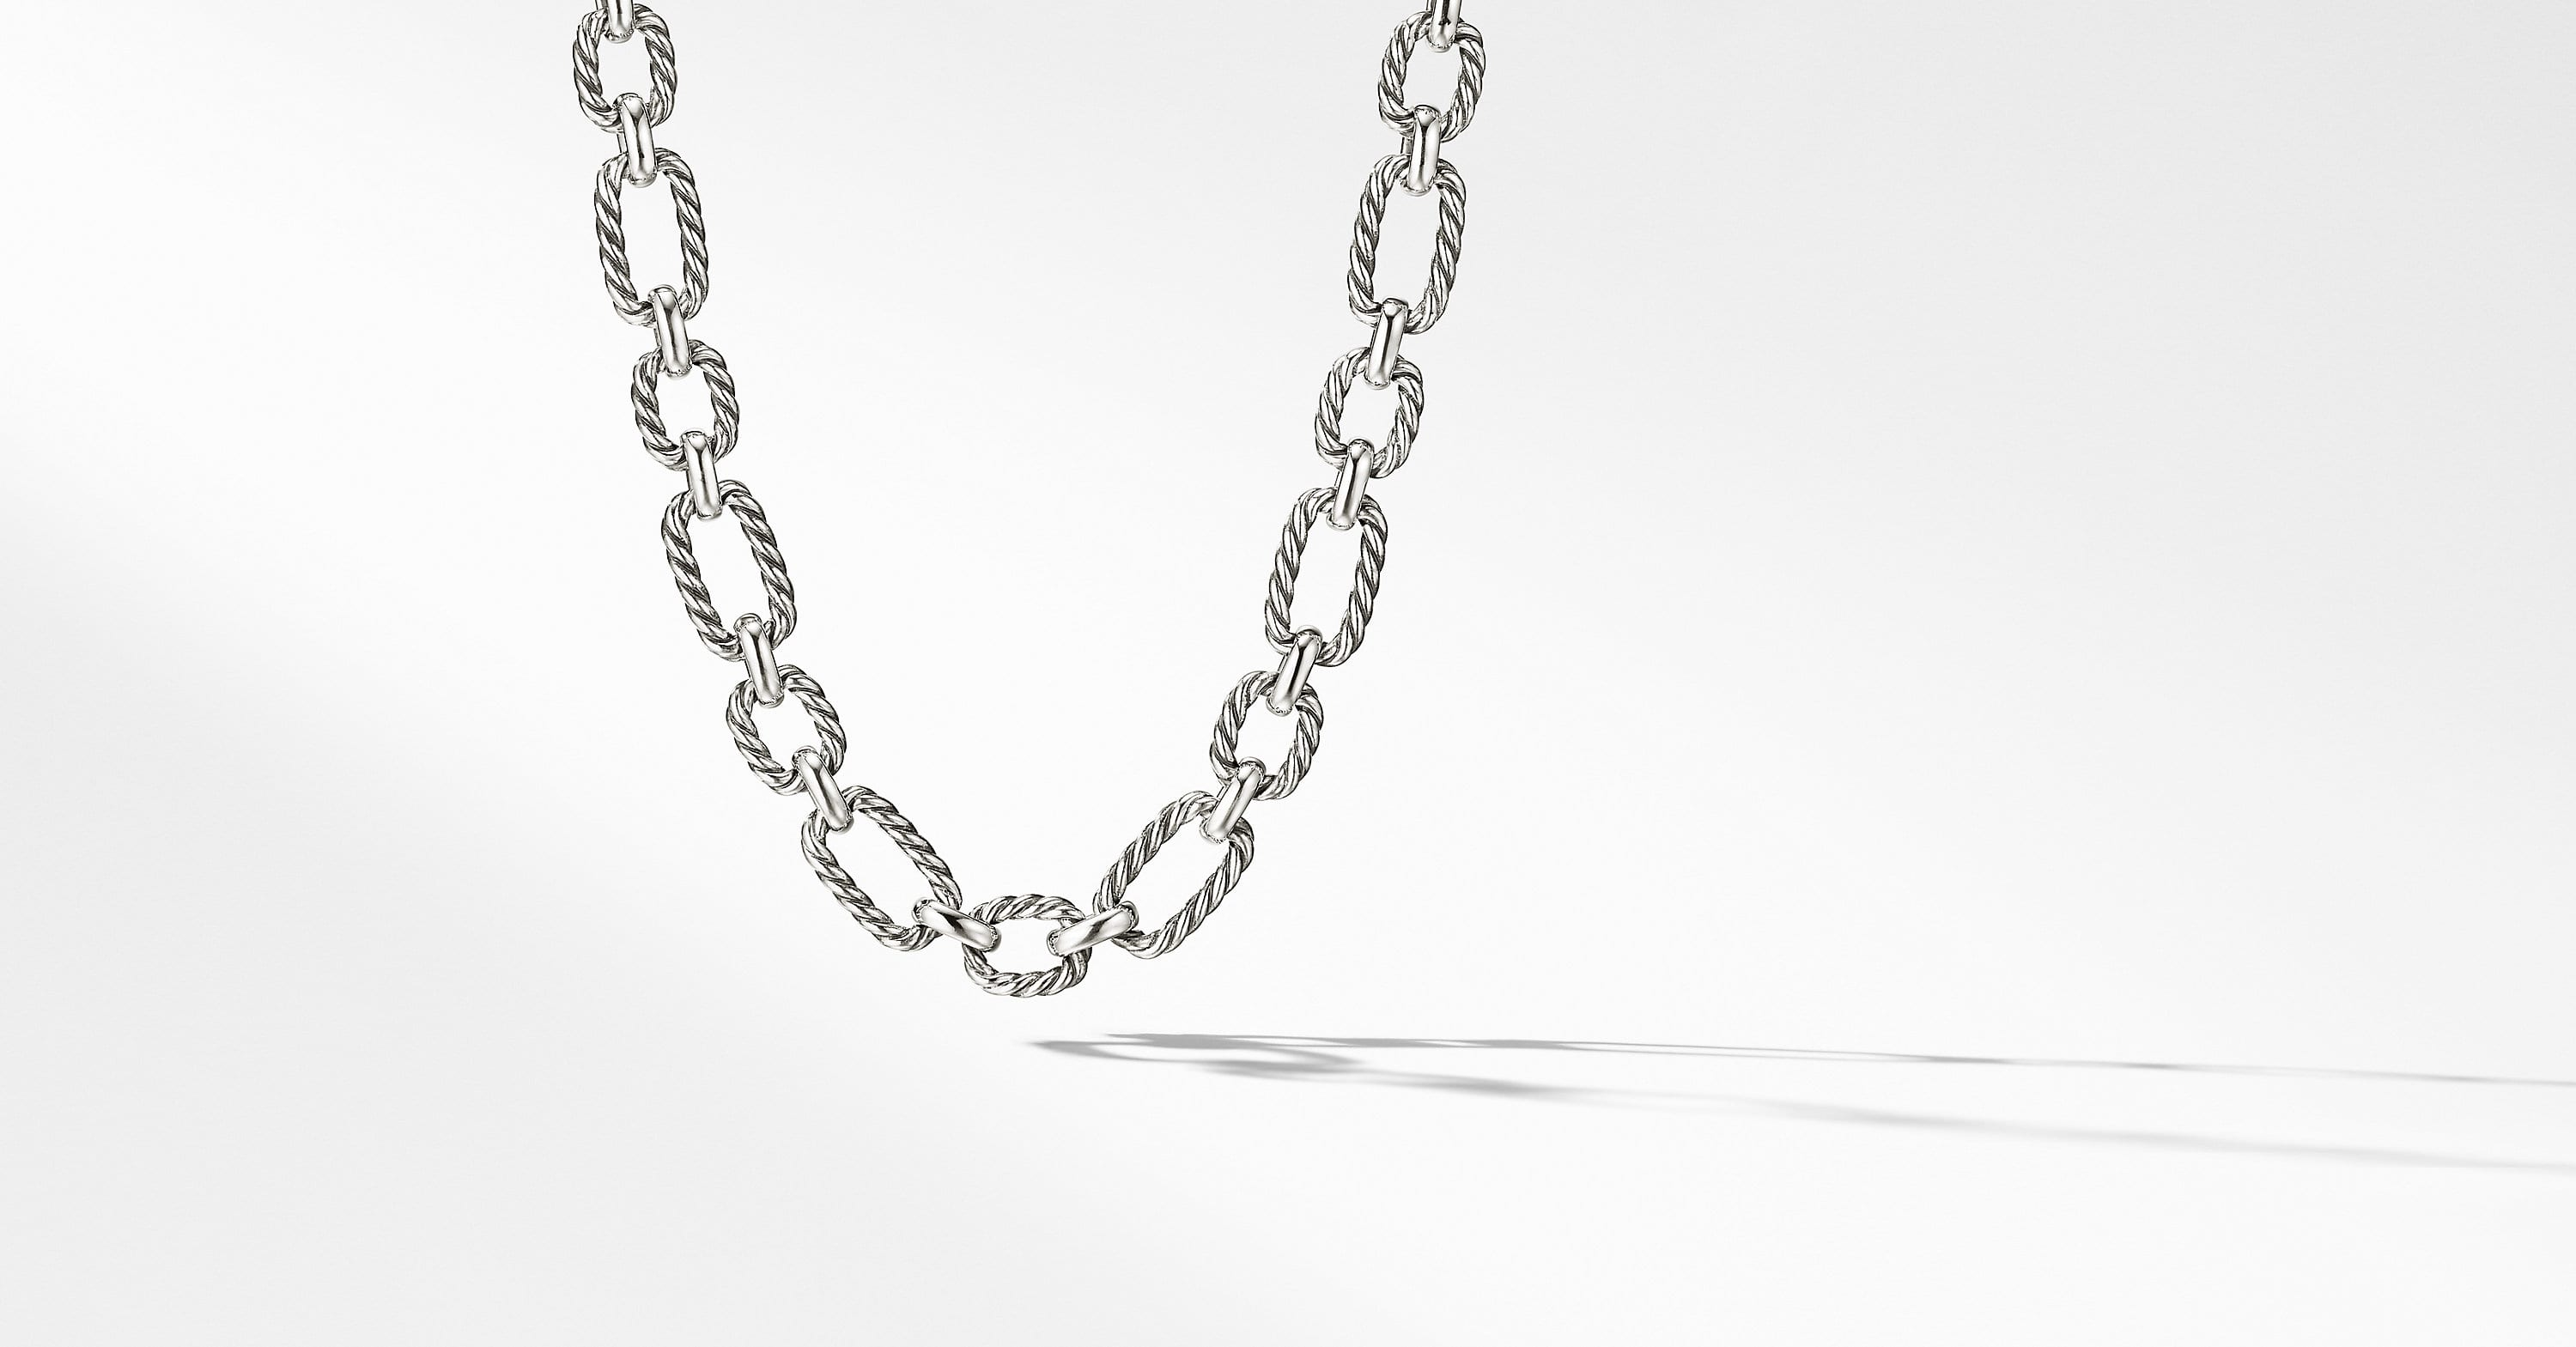 Cushion Link Necklace, 9.5mm